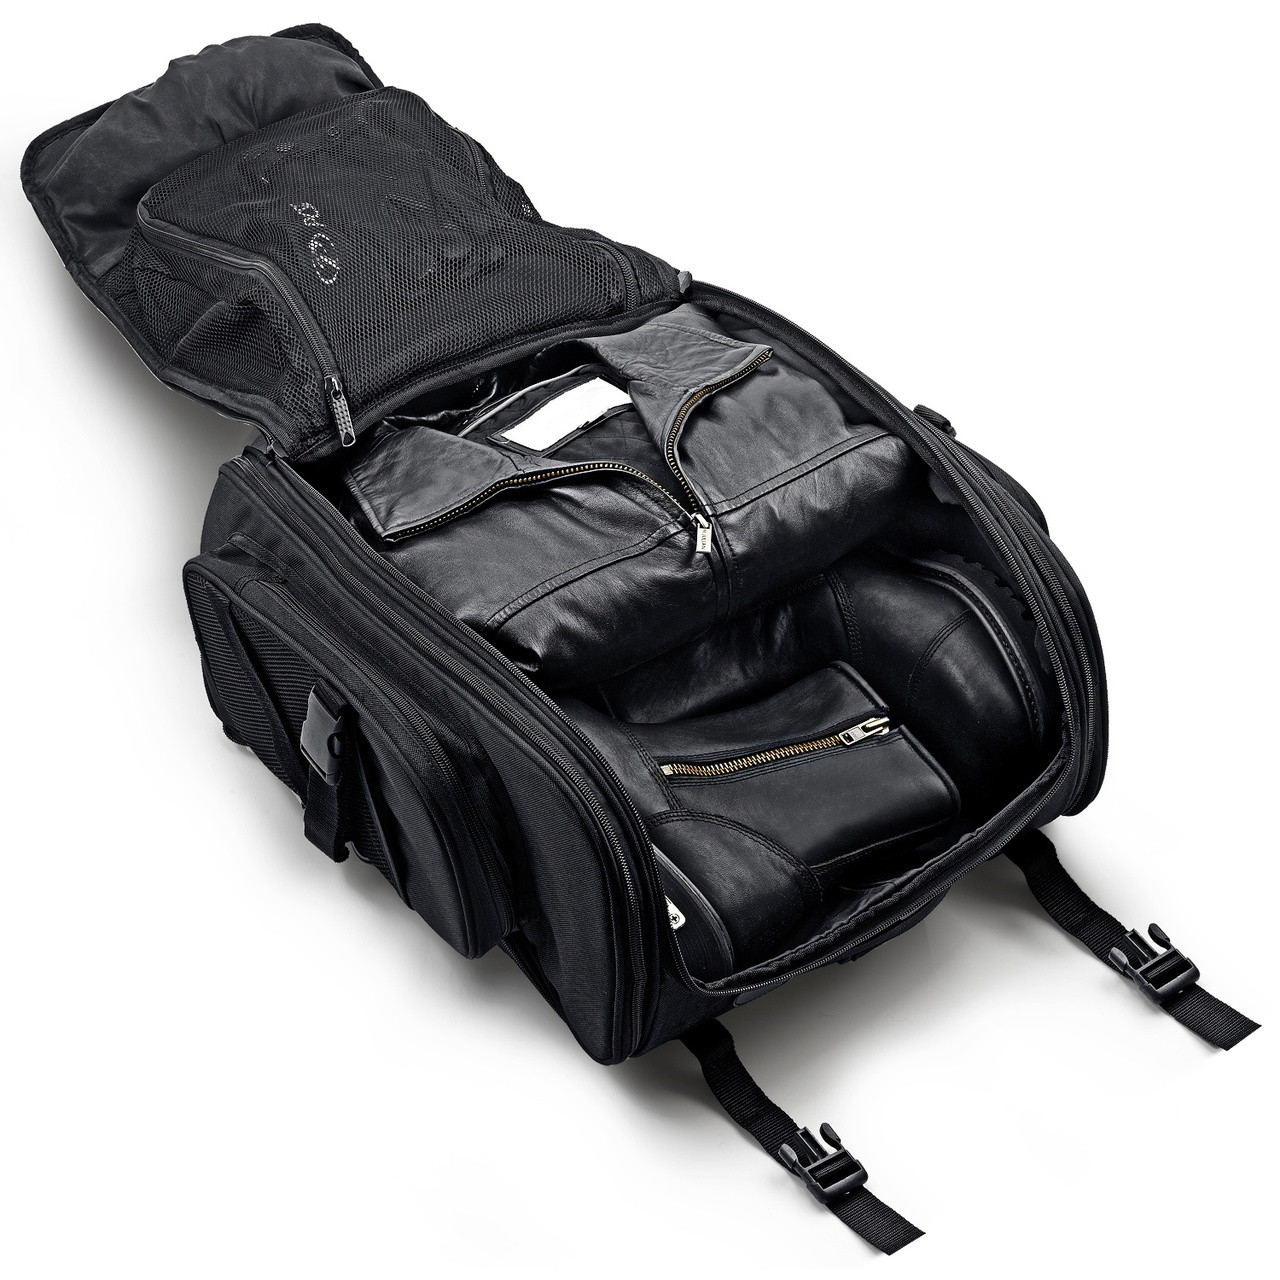 New Viking Leather Motorcycle Sissy Bar Bag From Vikingbags